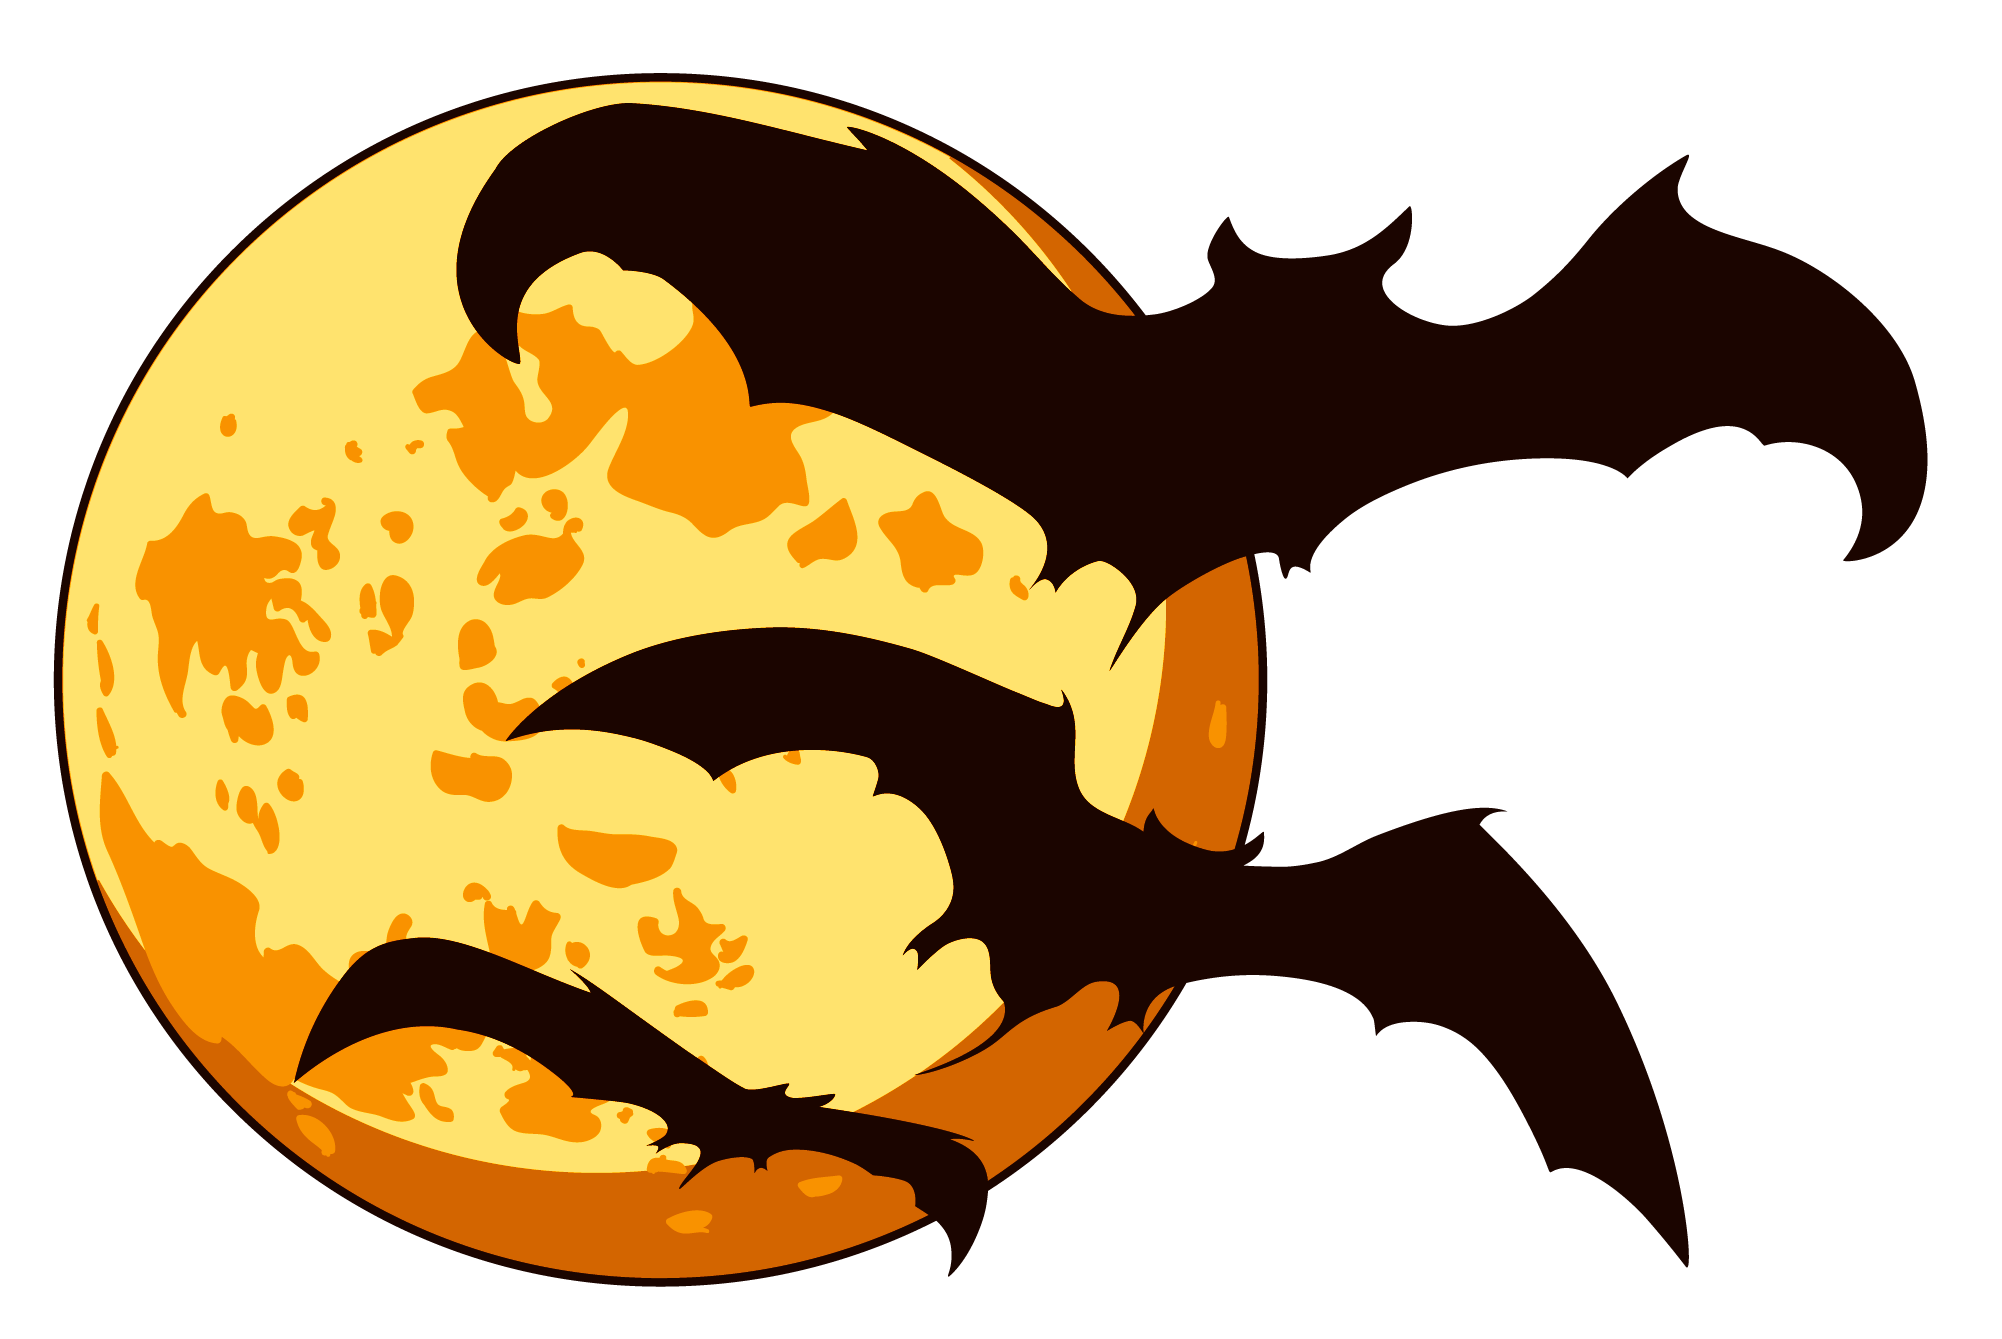 Moon With Bats PNG image #26453